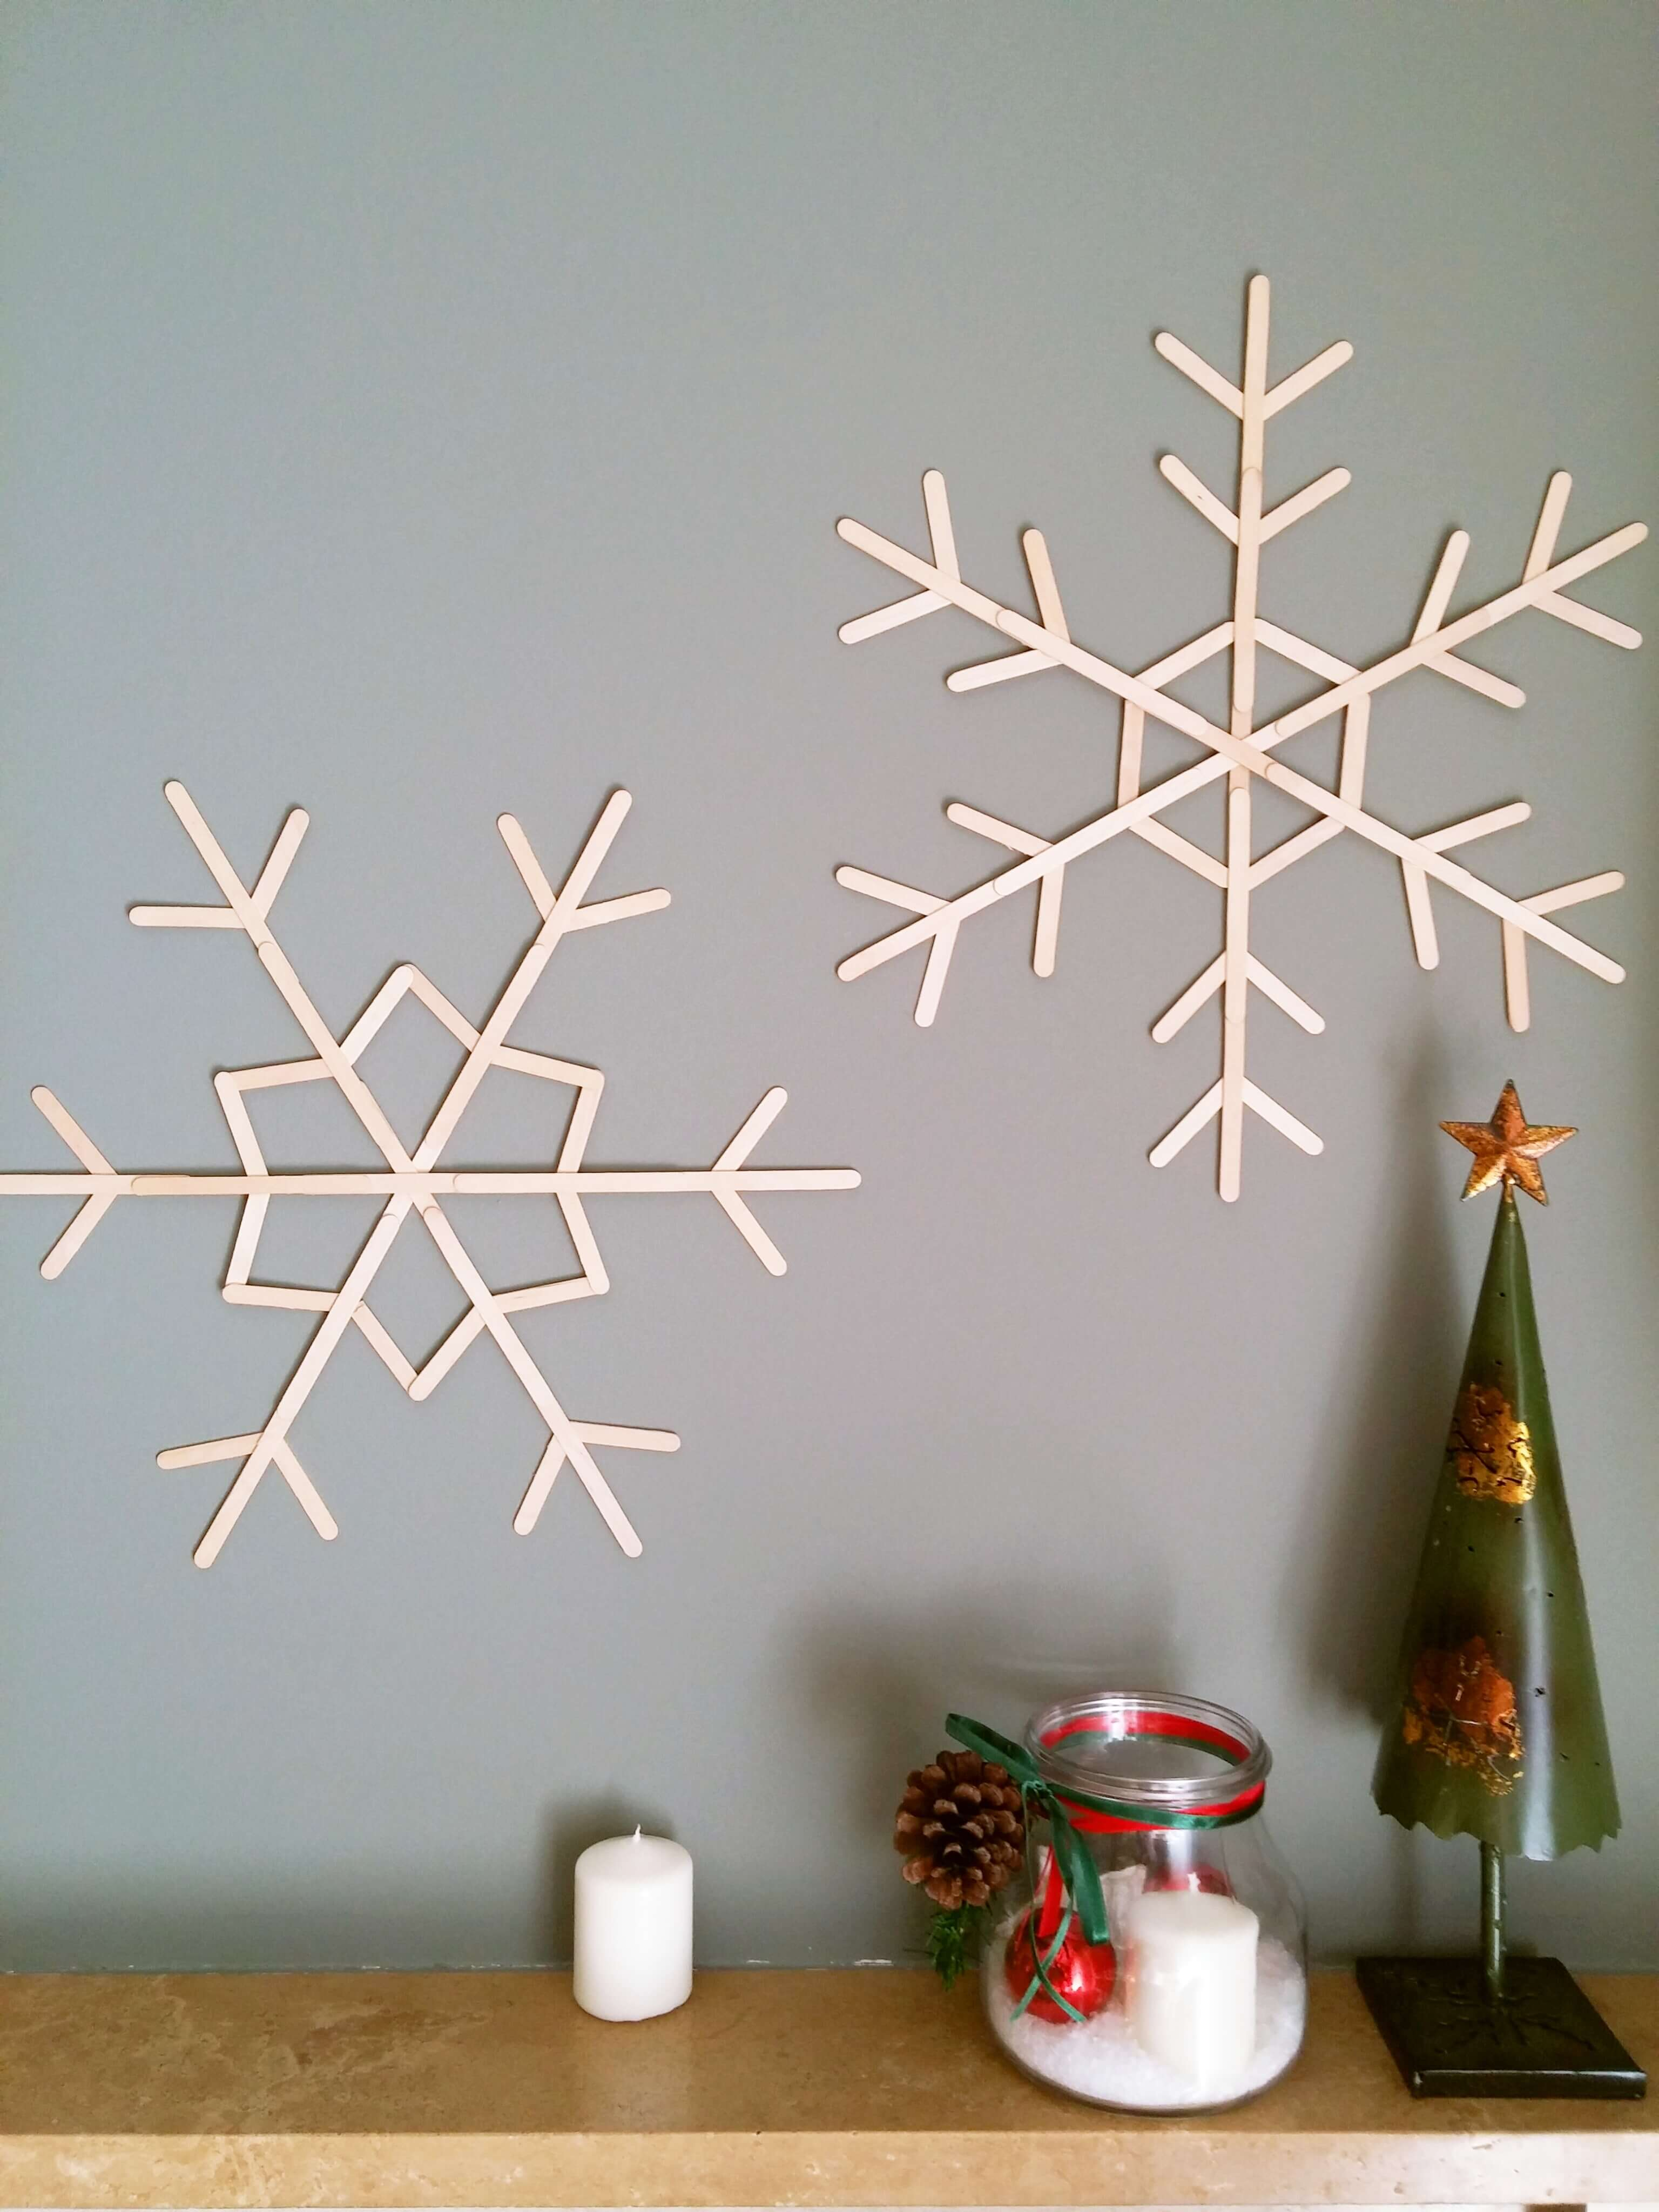 5_snowflakes_sticks